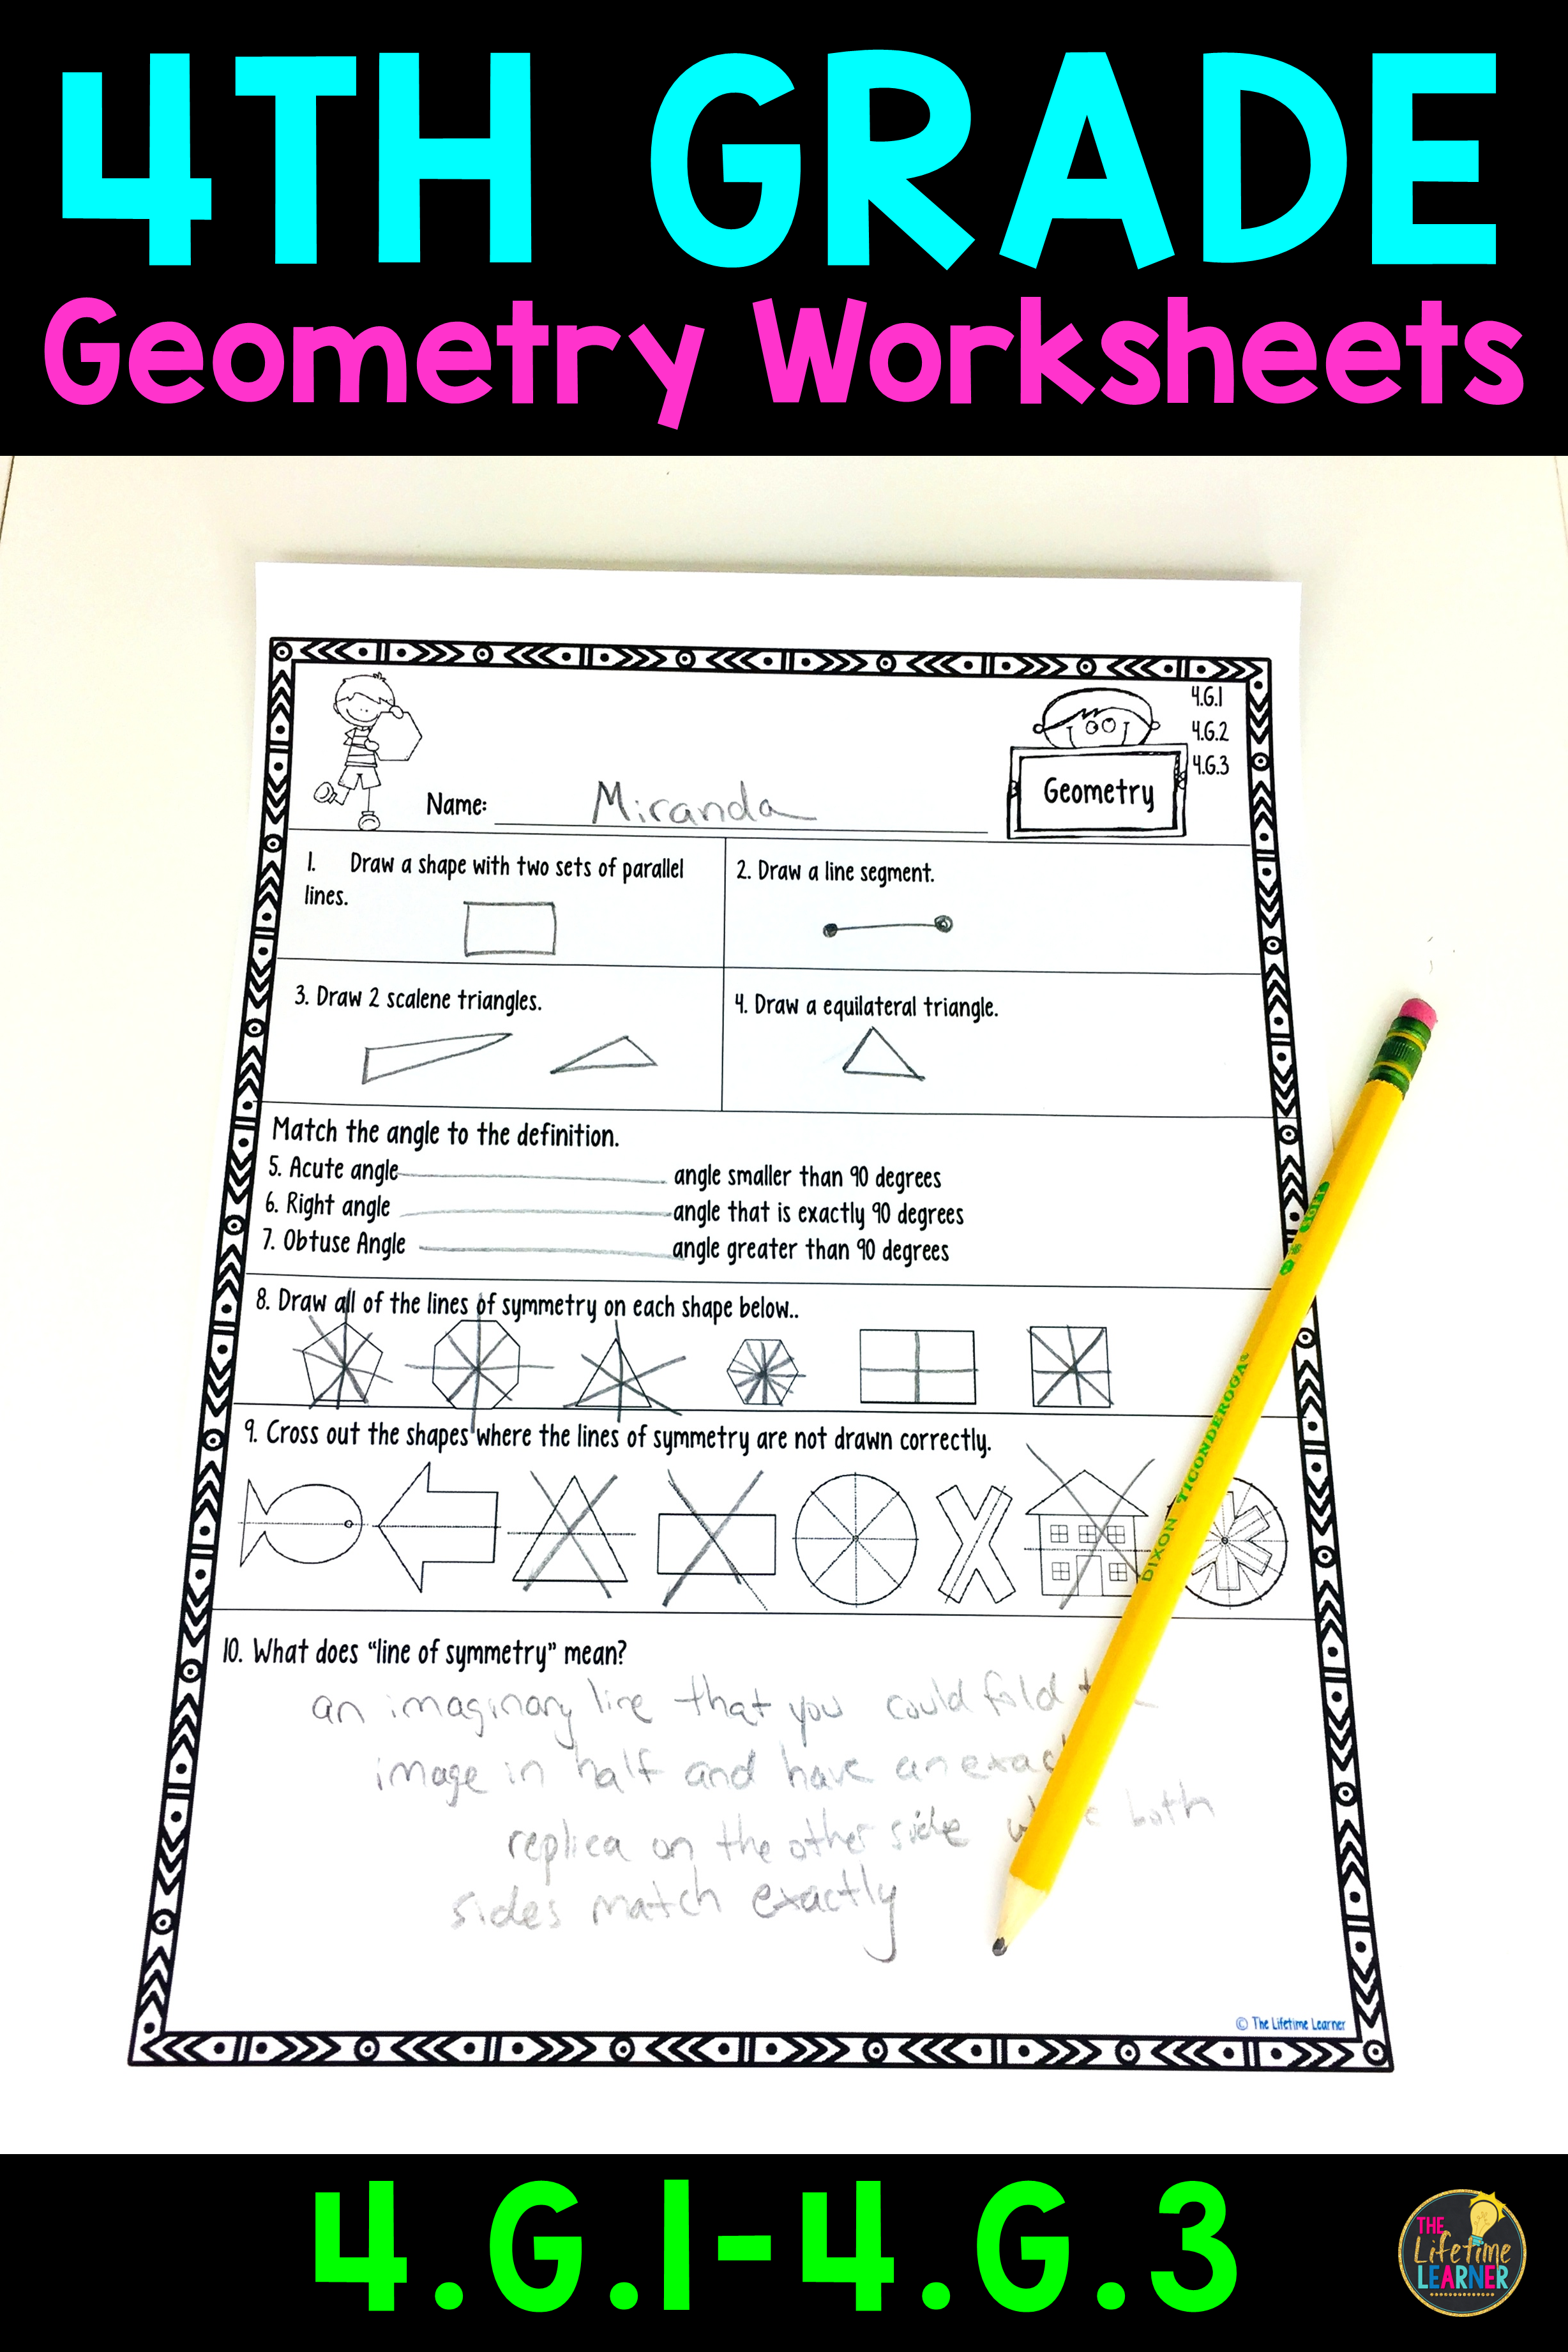 These Geometry Worksheets Are Perfect For 4th Graders They Align With Common Core Standards 4 G 1 4 G 2 And Geometry Worksheets 4th Grade Math Math Geometry